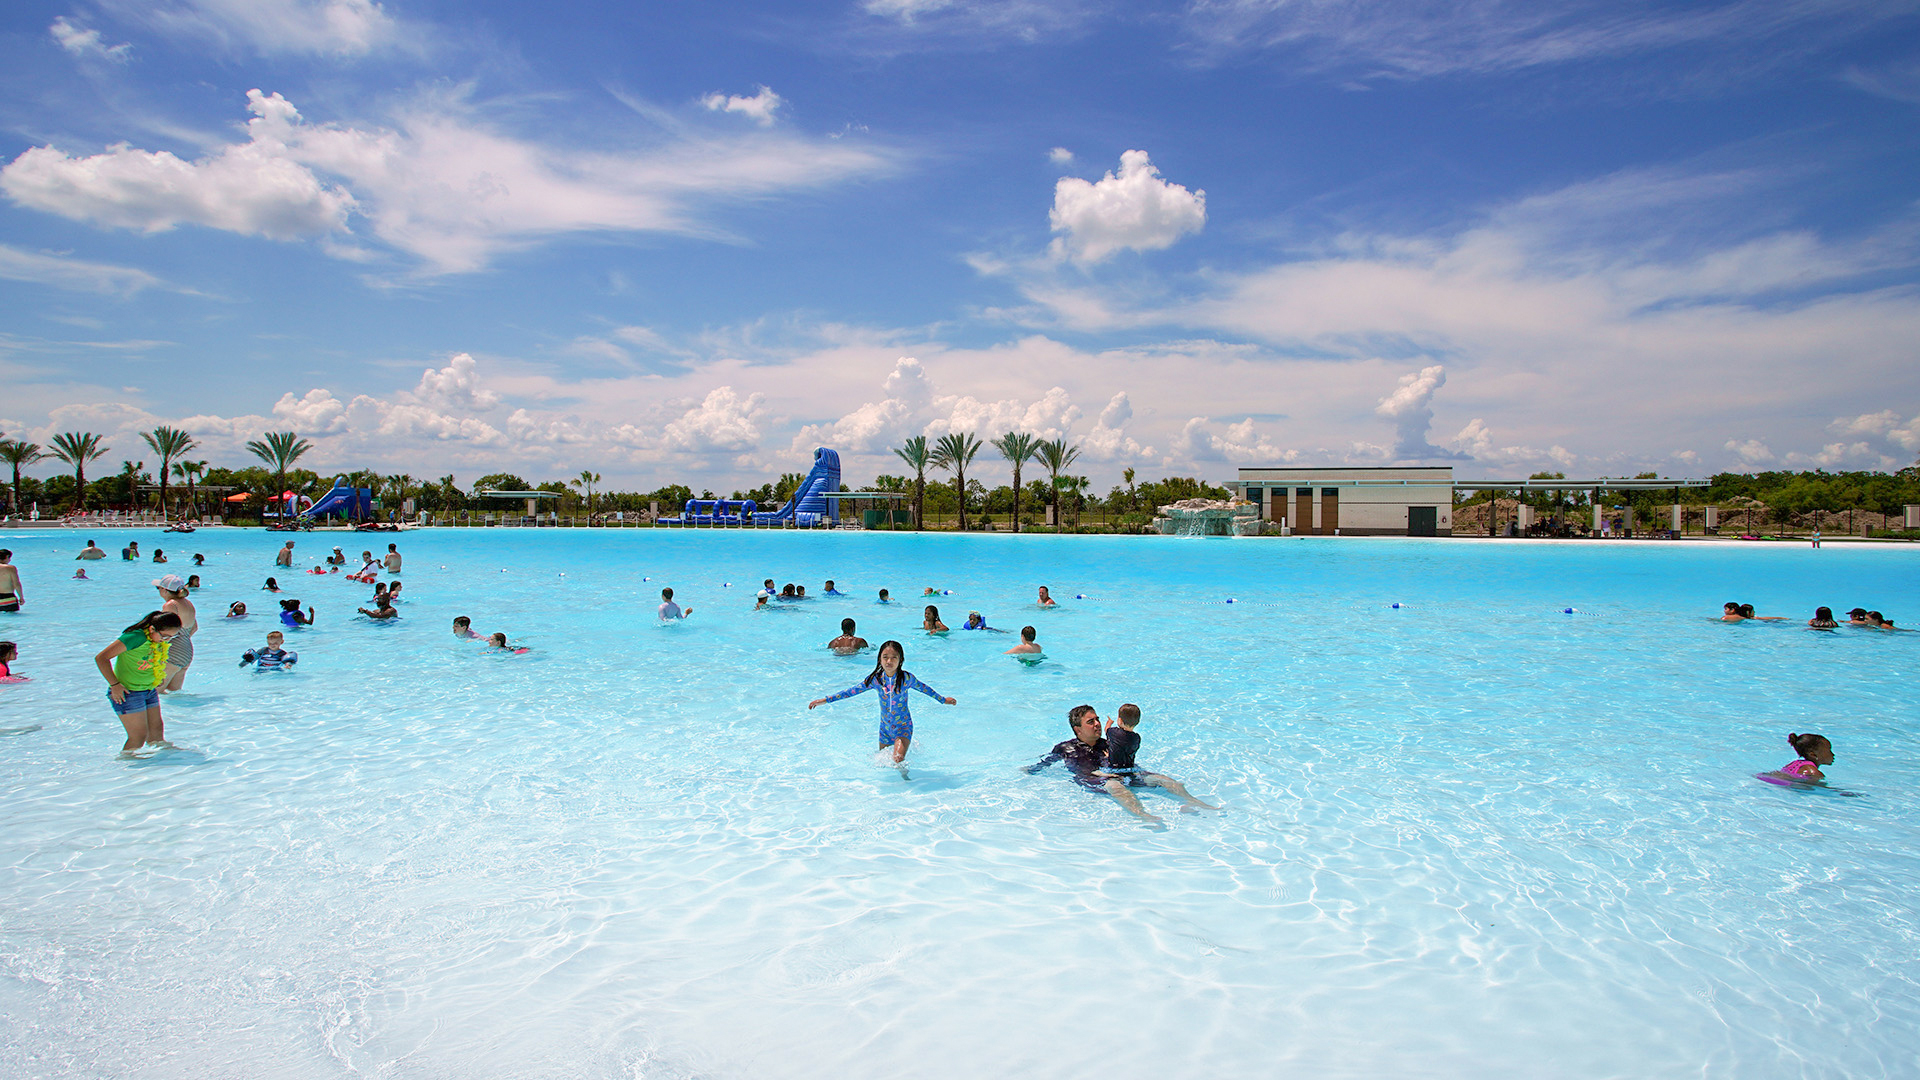 Houston S Largest Crystal Clear Lagoon In Texas Opens To Public For Limited Time This July Laredo Morning Times